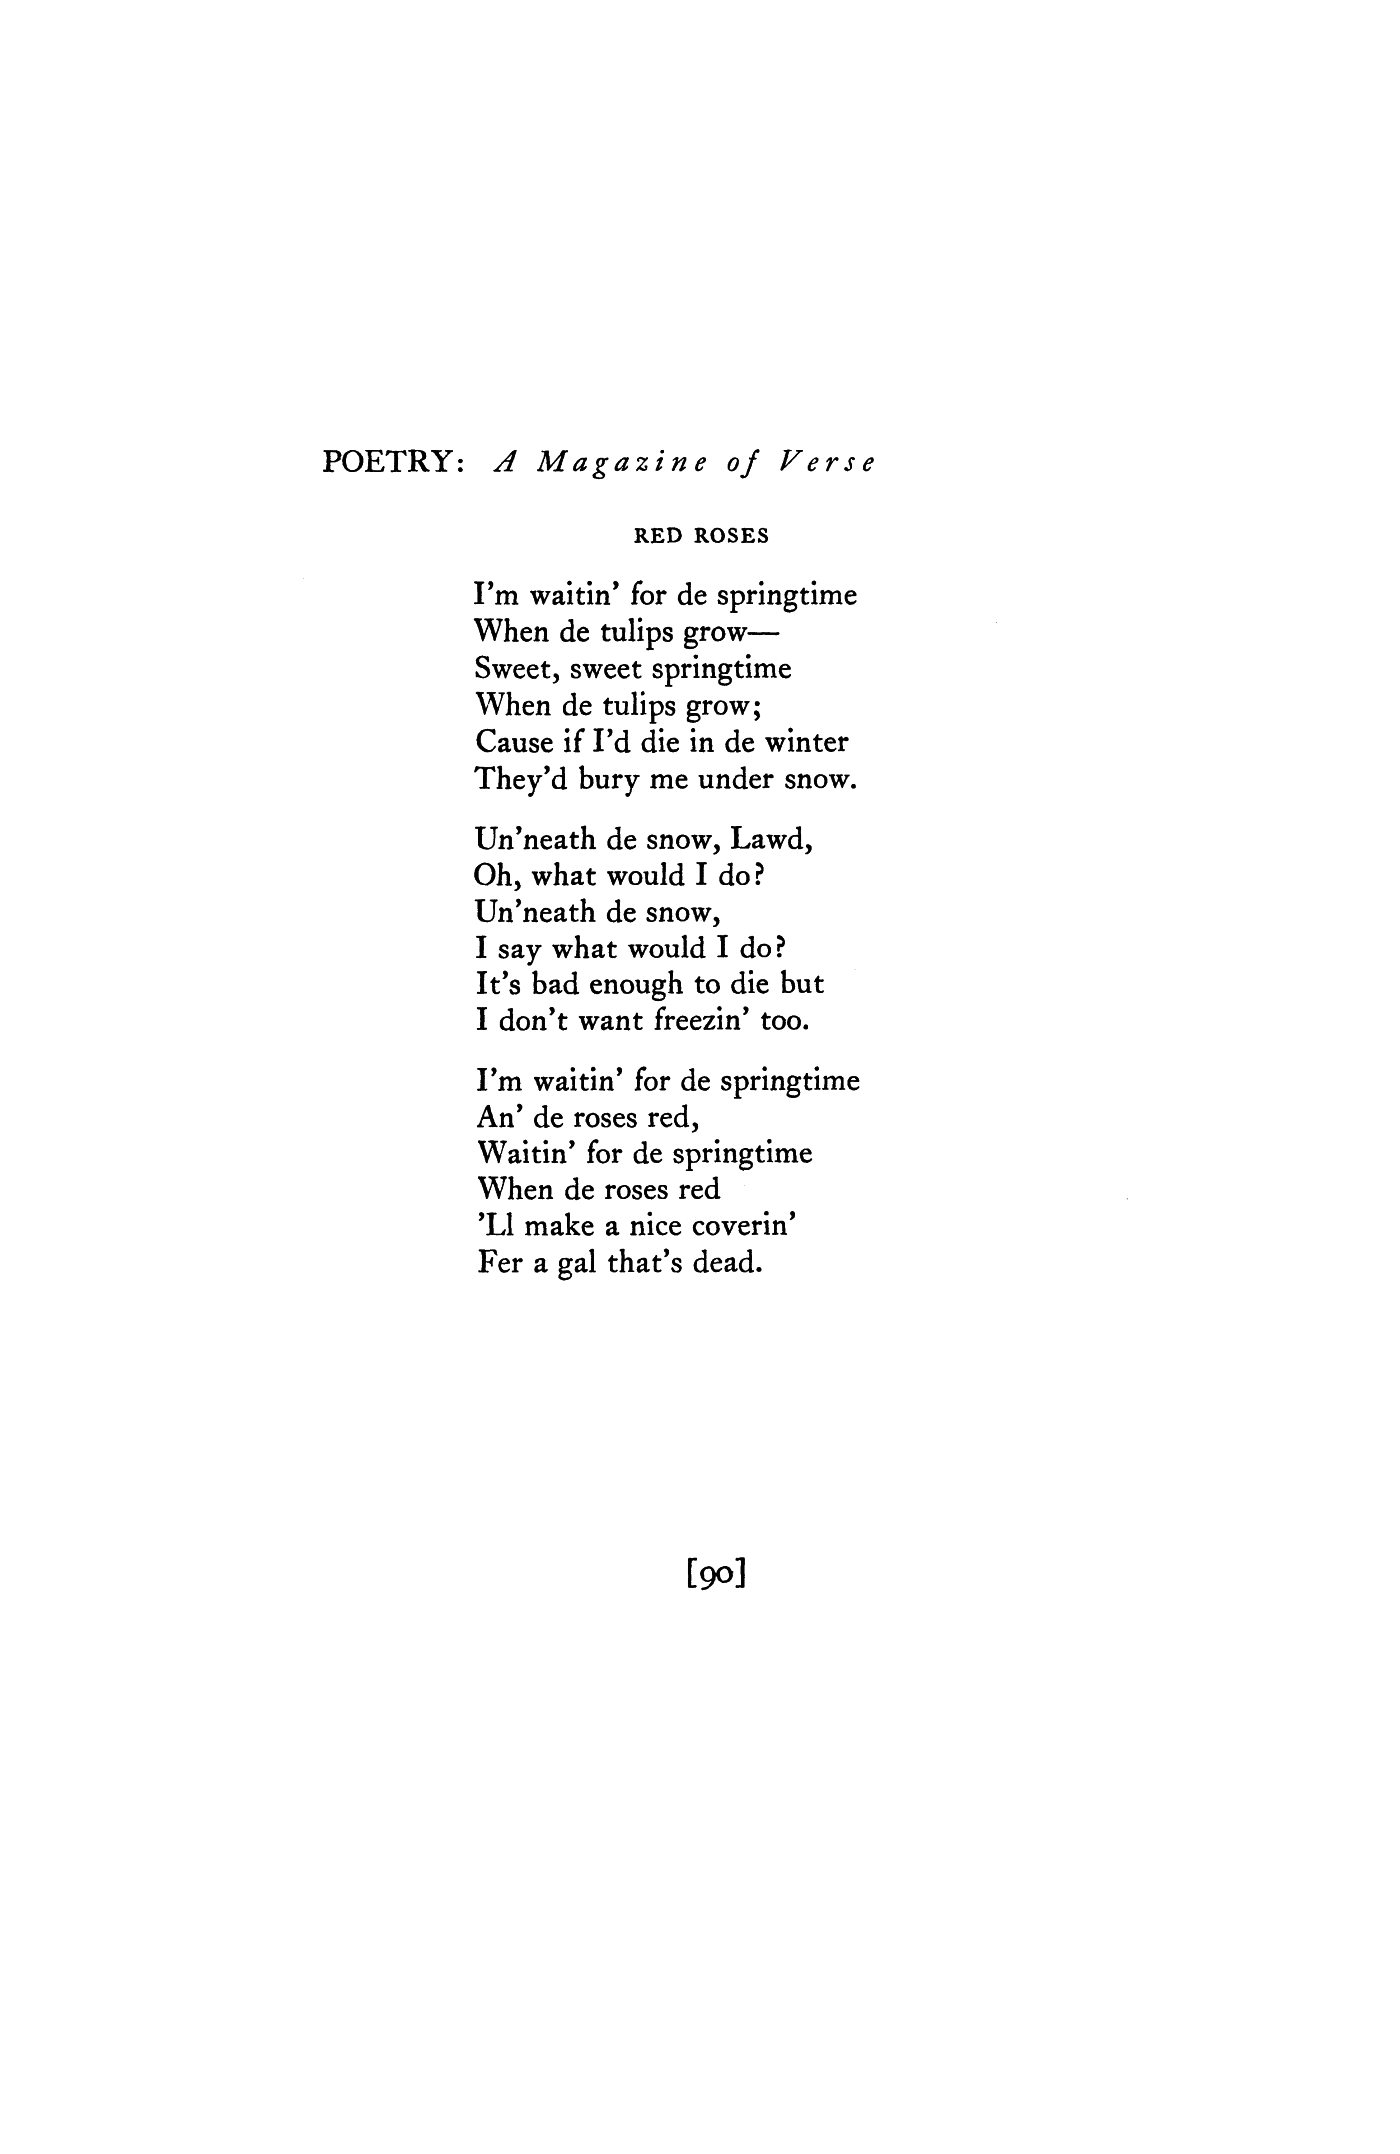 Red Roses by Langston Hughes | Poetry Magazine